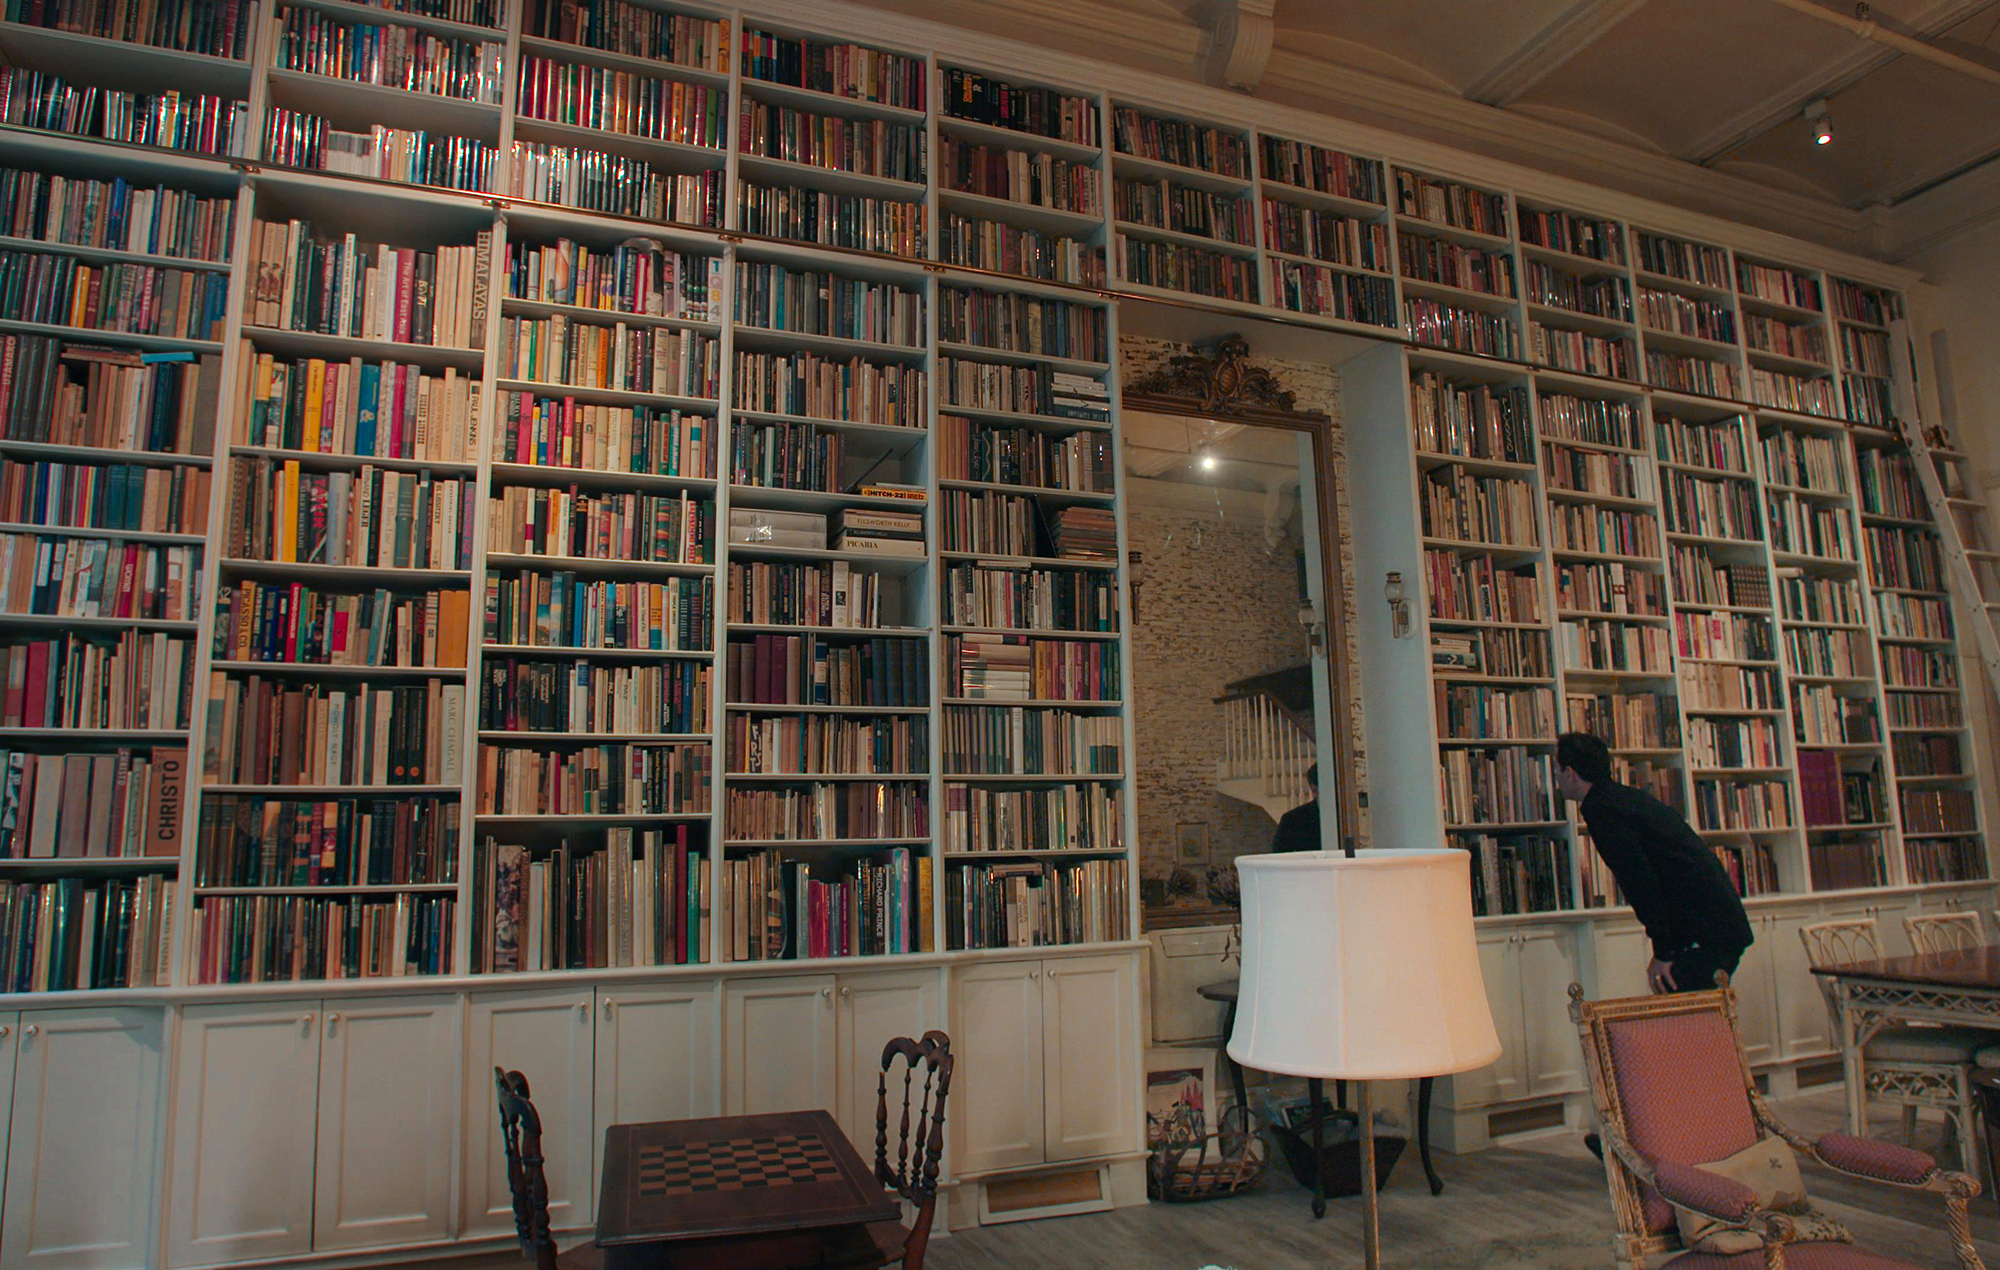 'The Booksellers' review: charming documentary about the joy of collecting